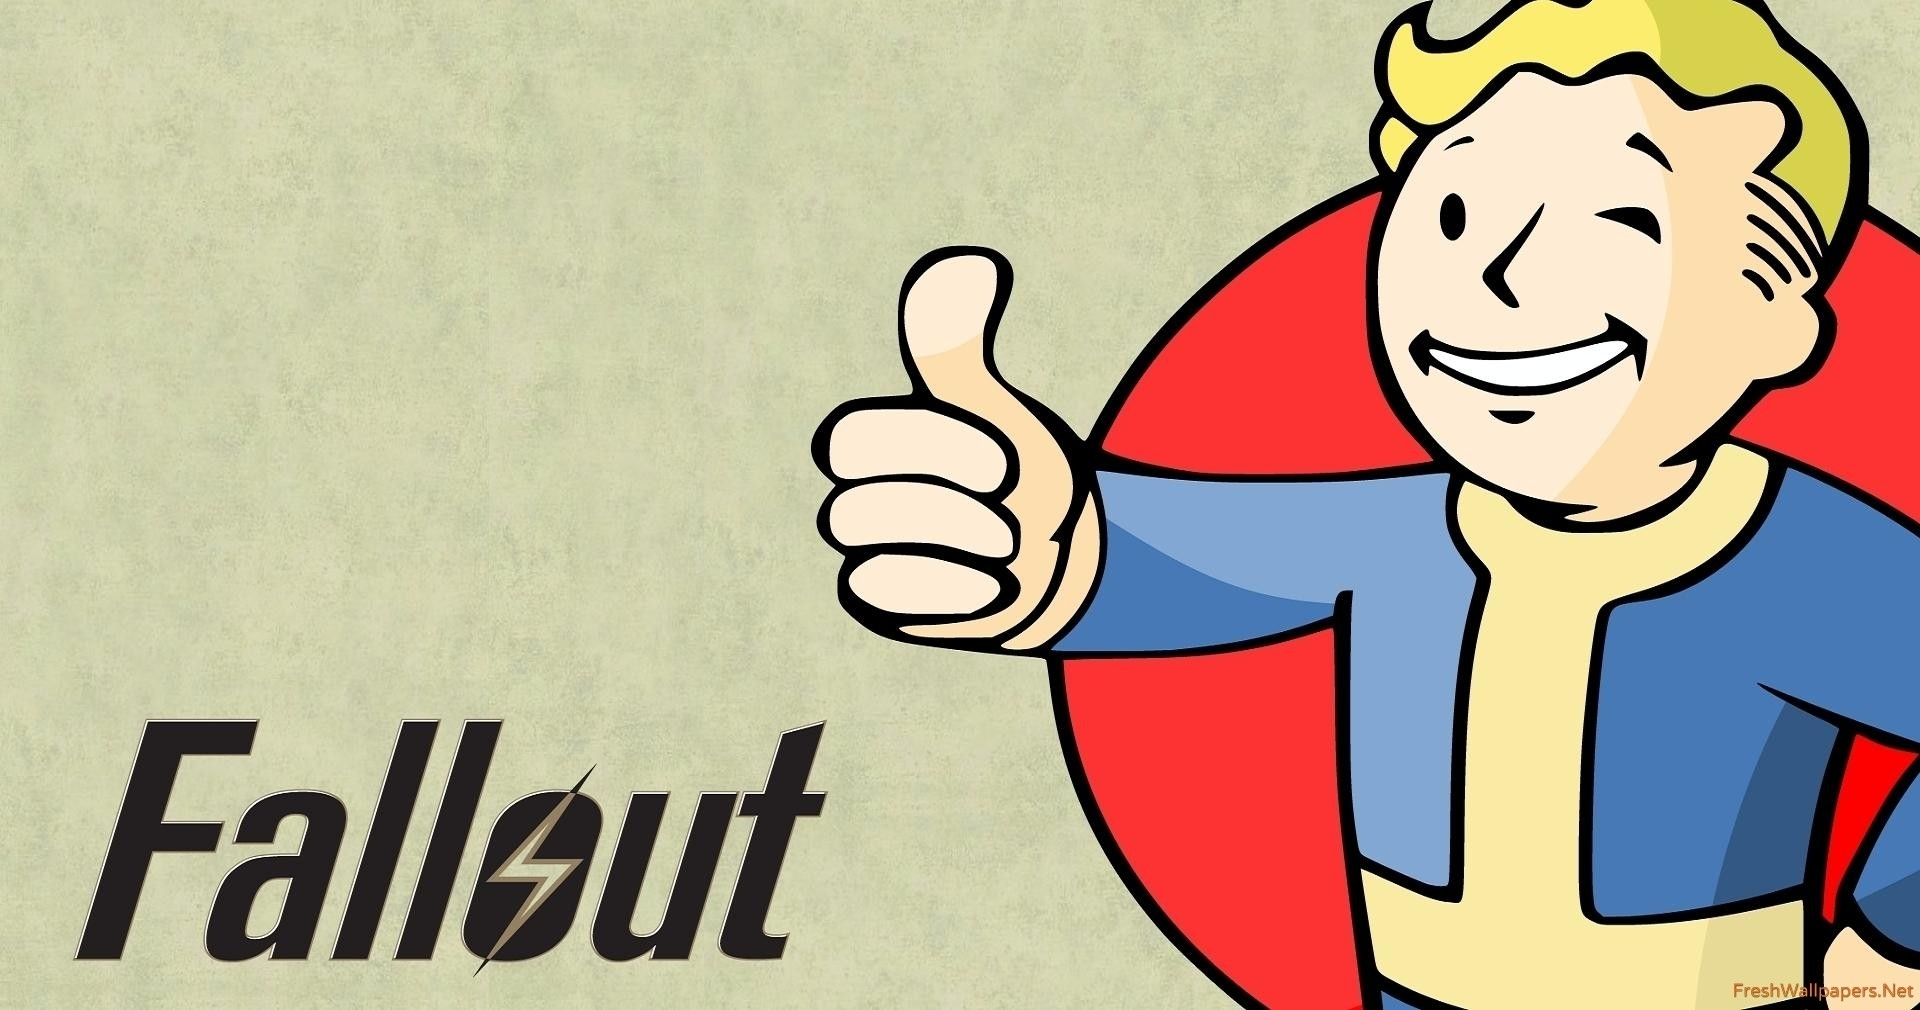 vault boy dressed in blue - fallout wallpapers | freshwallpapers